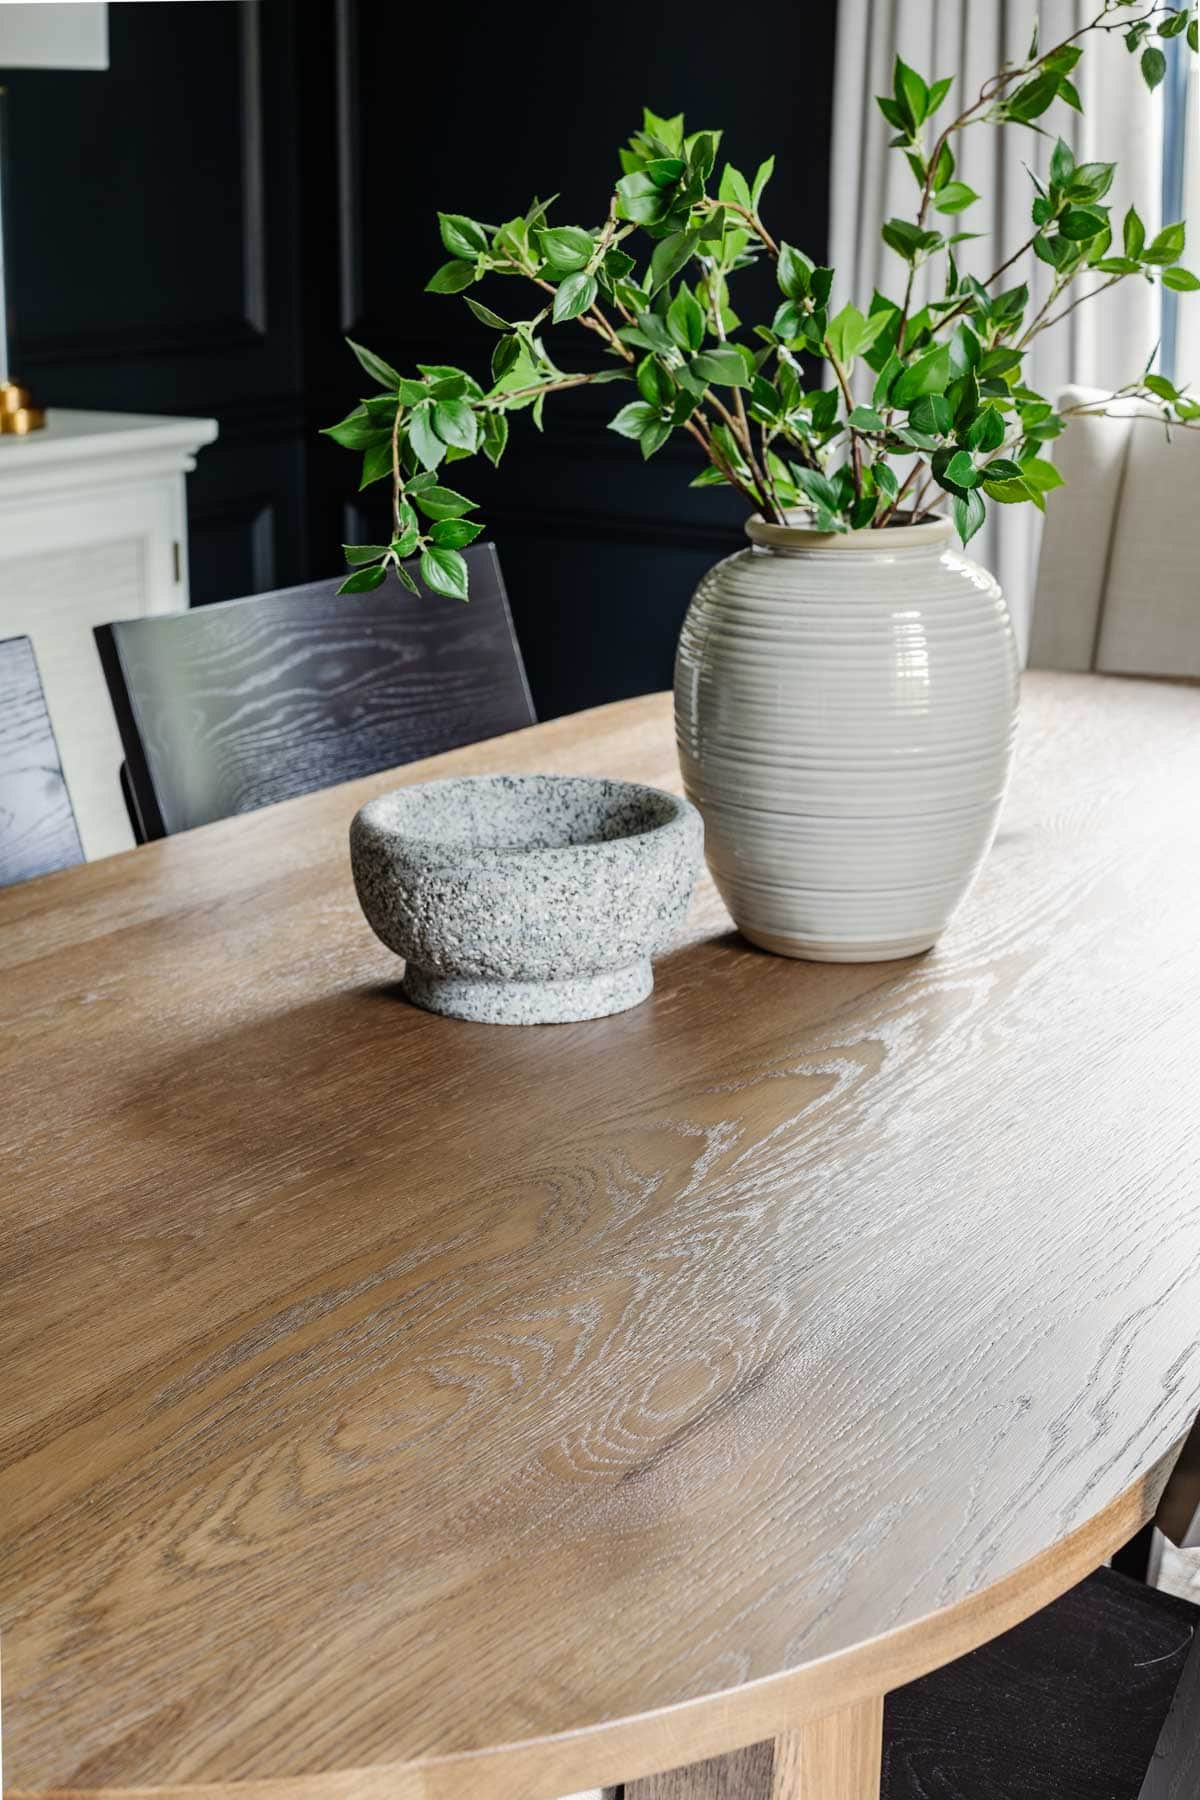 wood midcentury modern oval dining table